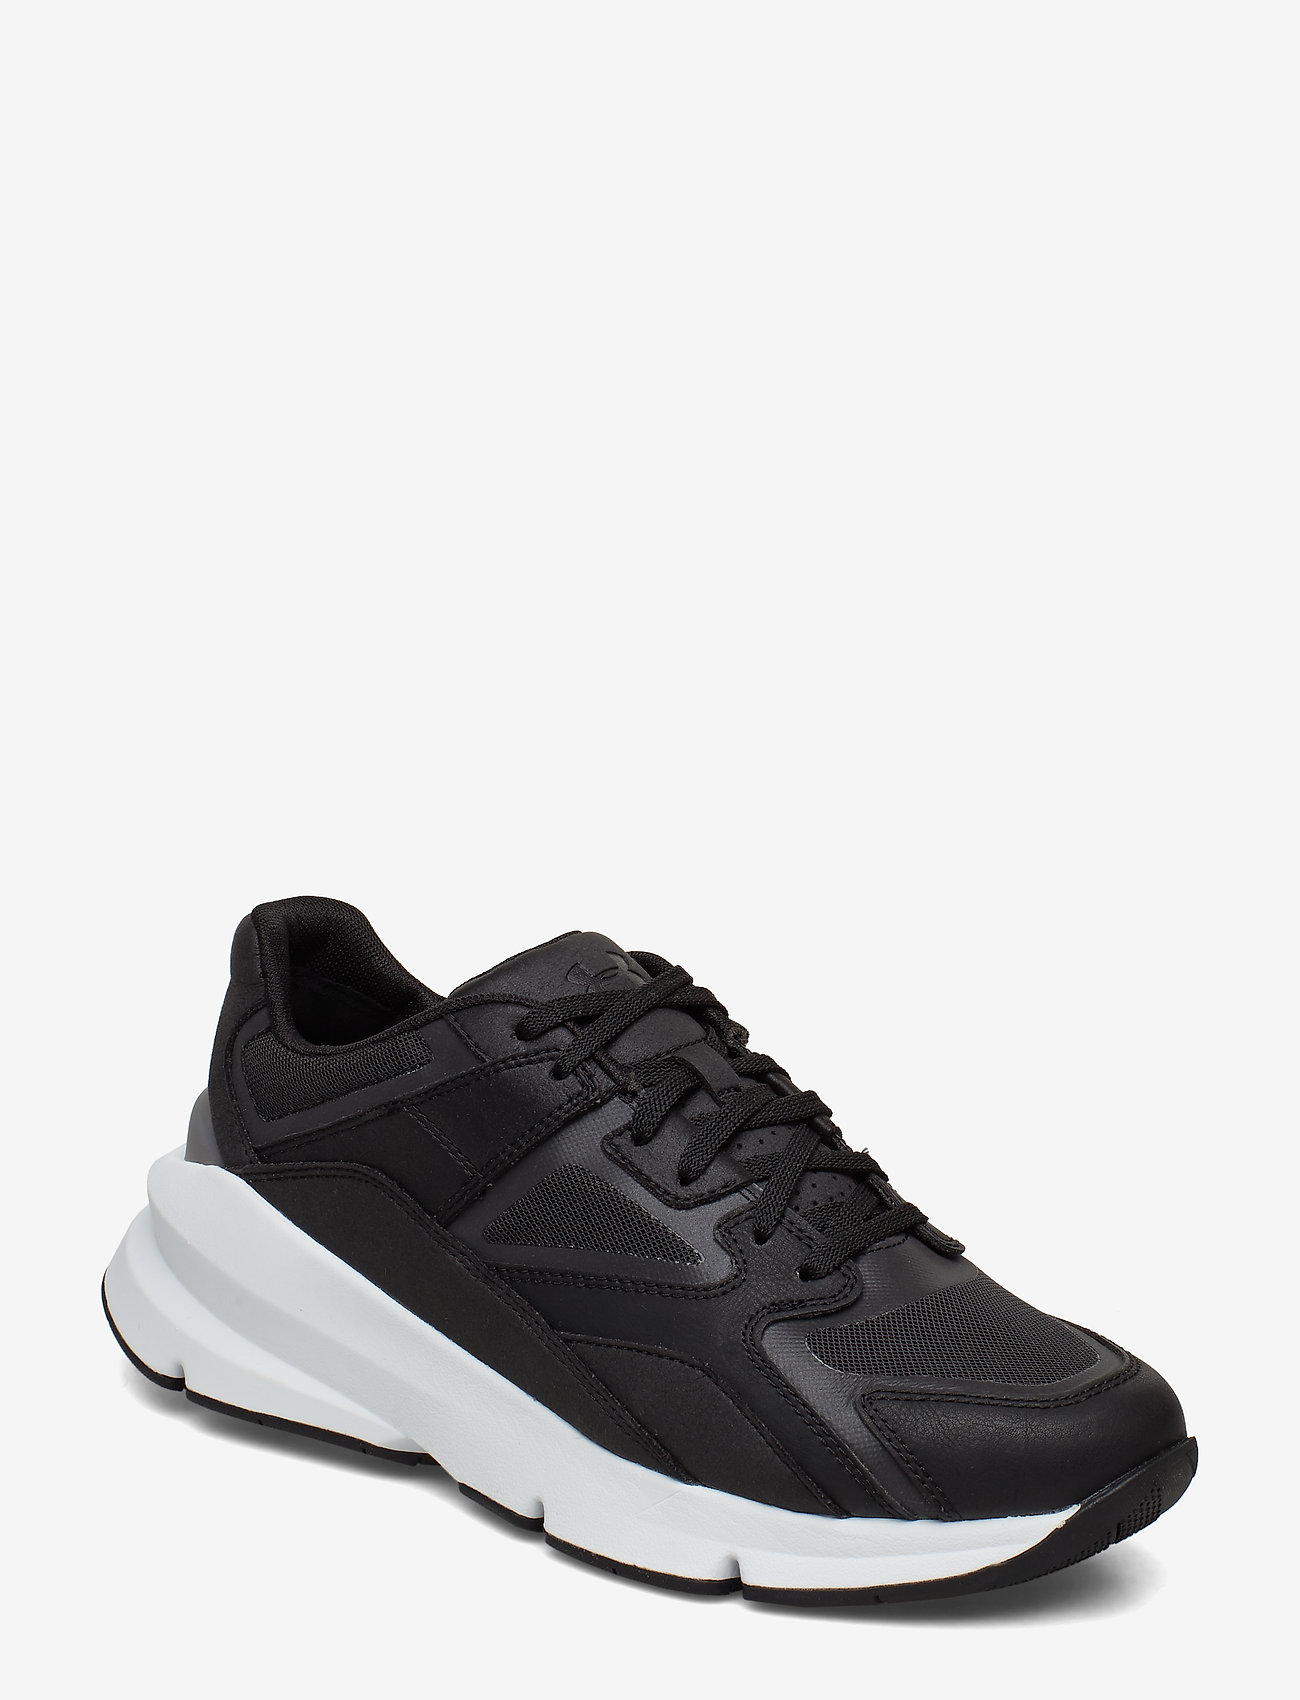 Under Armour - UA FORGE 96 CLRSHFT - low tops - black